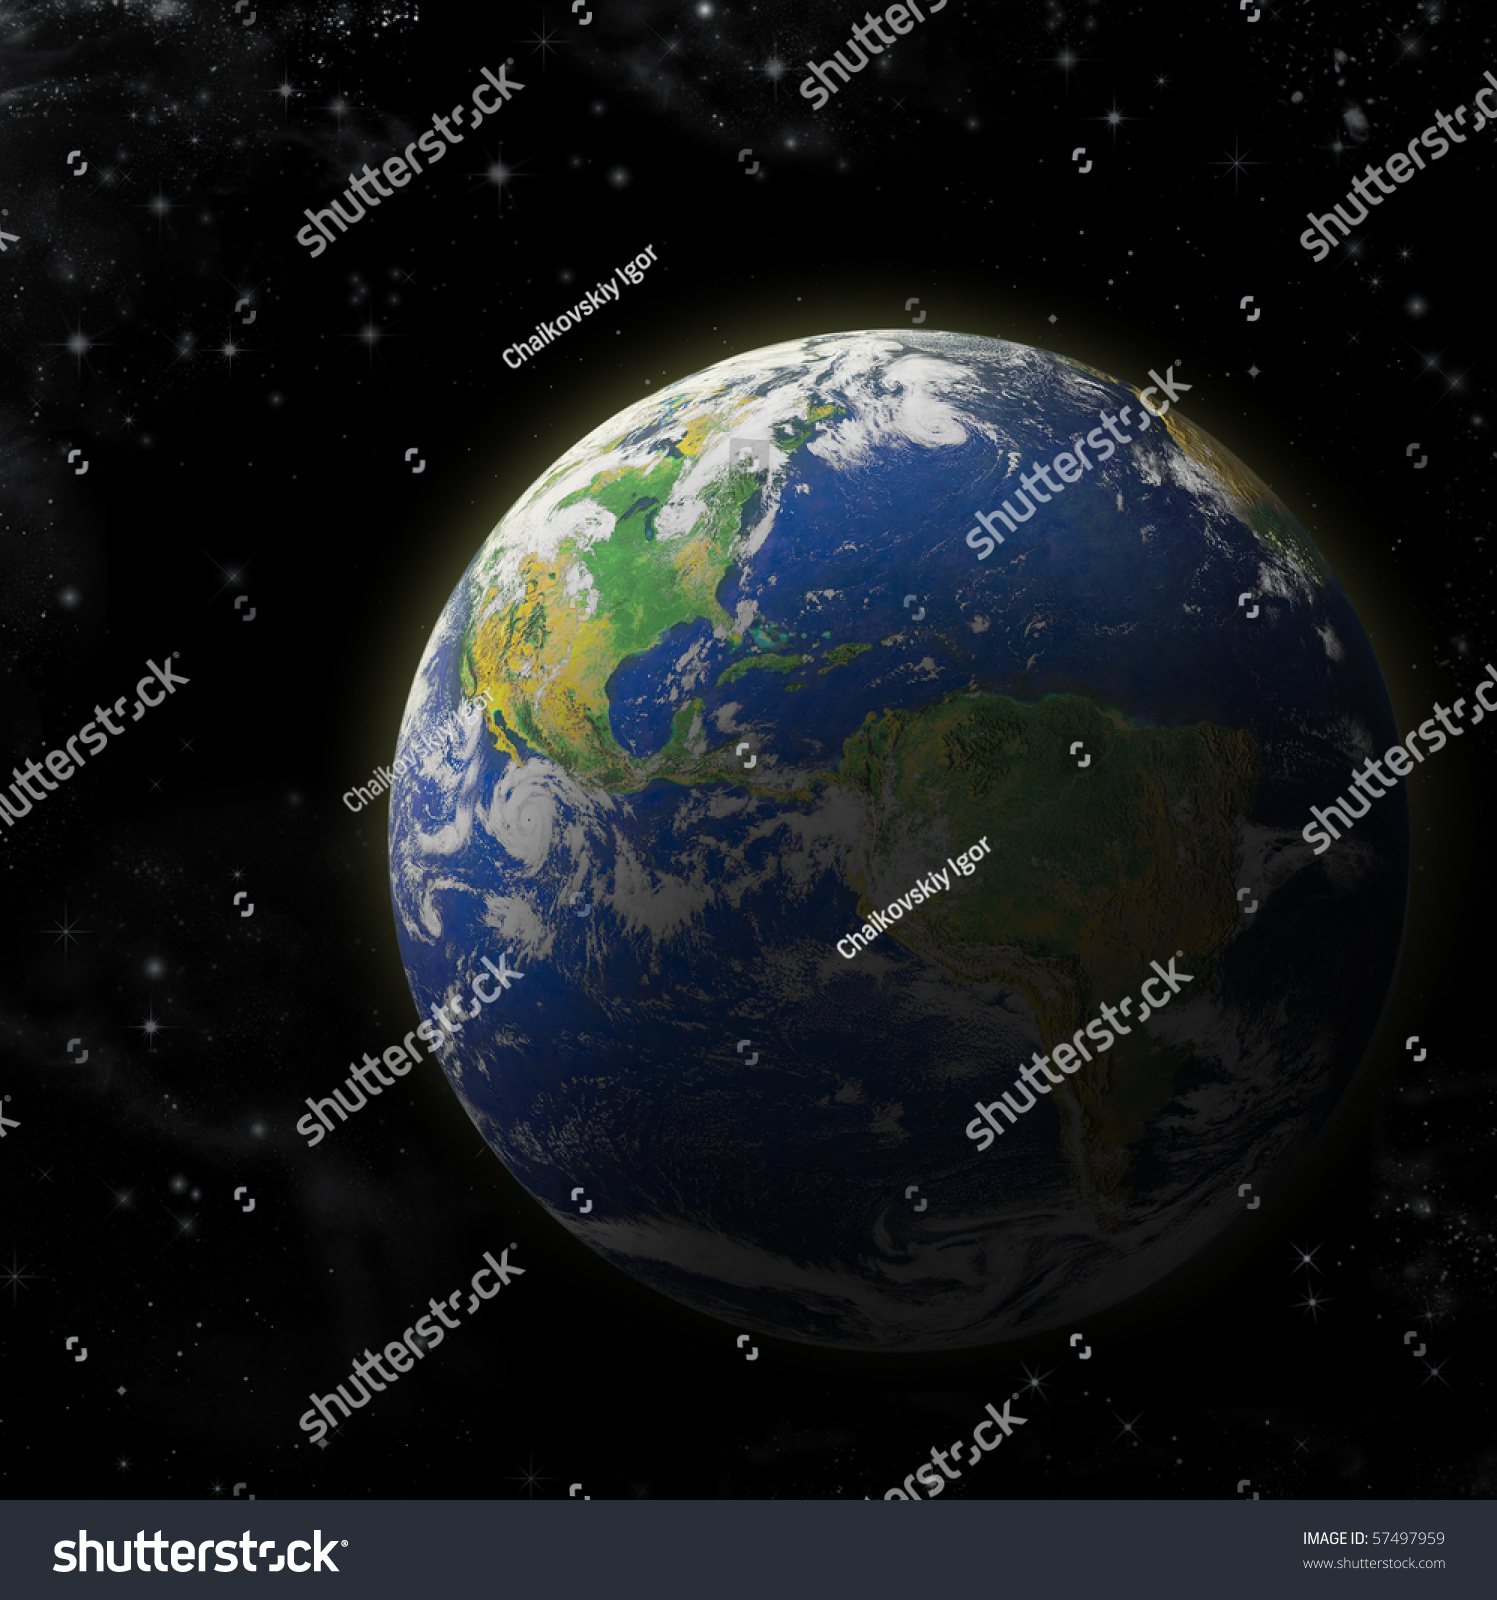 real pictures of earth the planet - photo #24